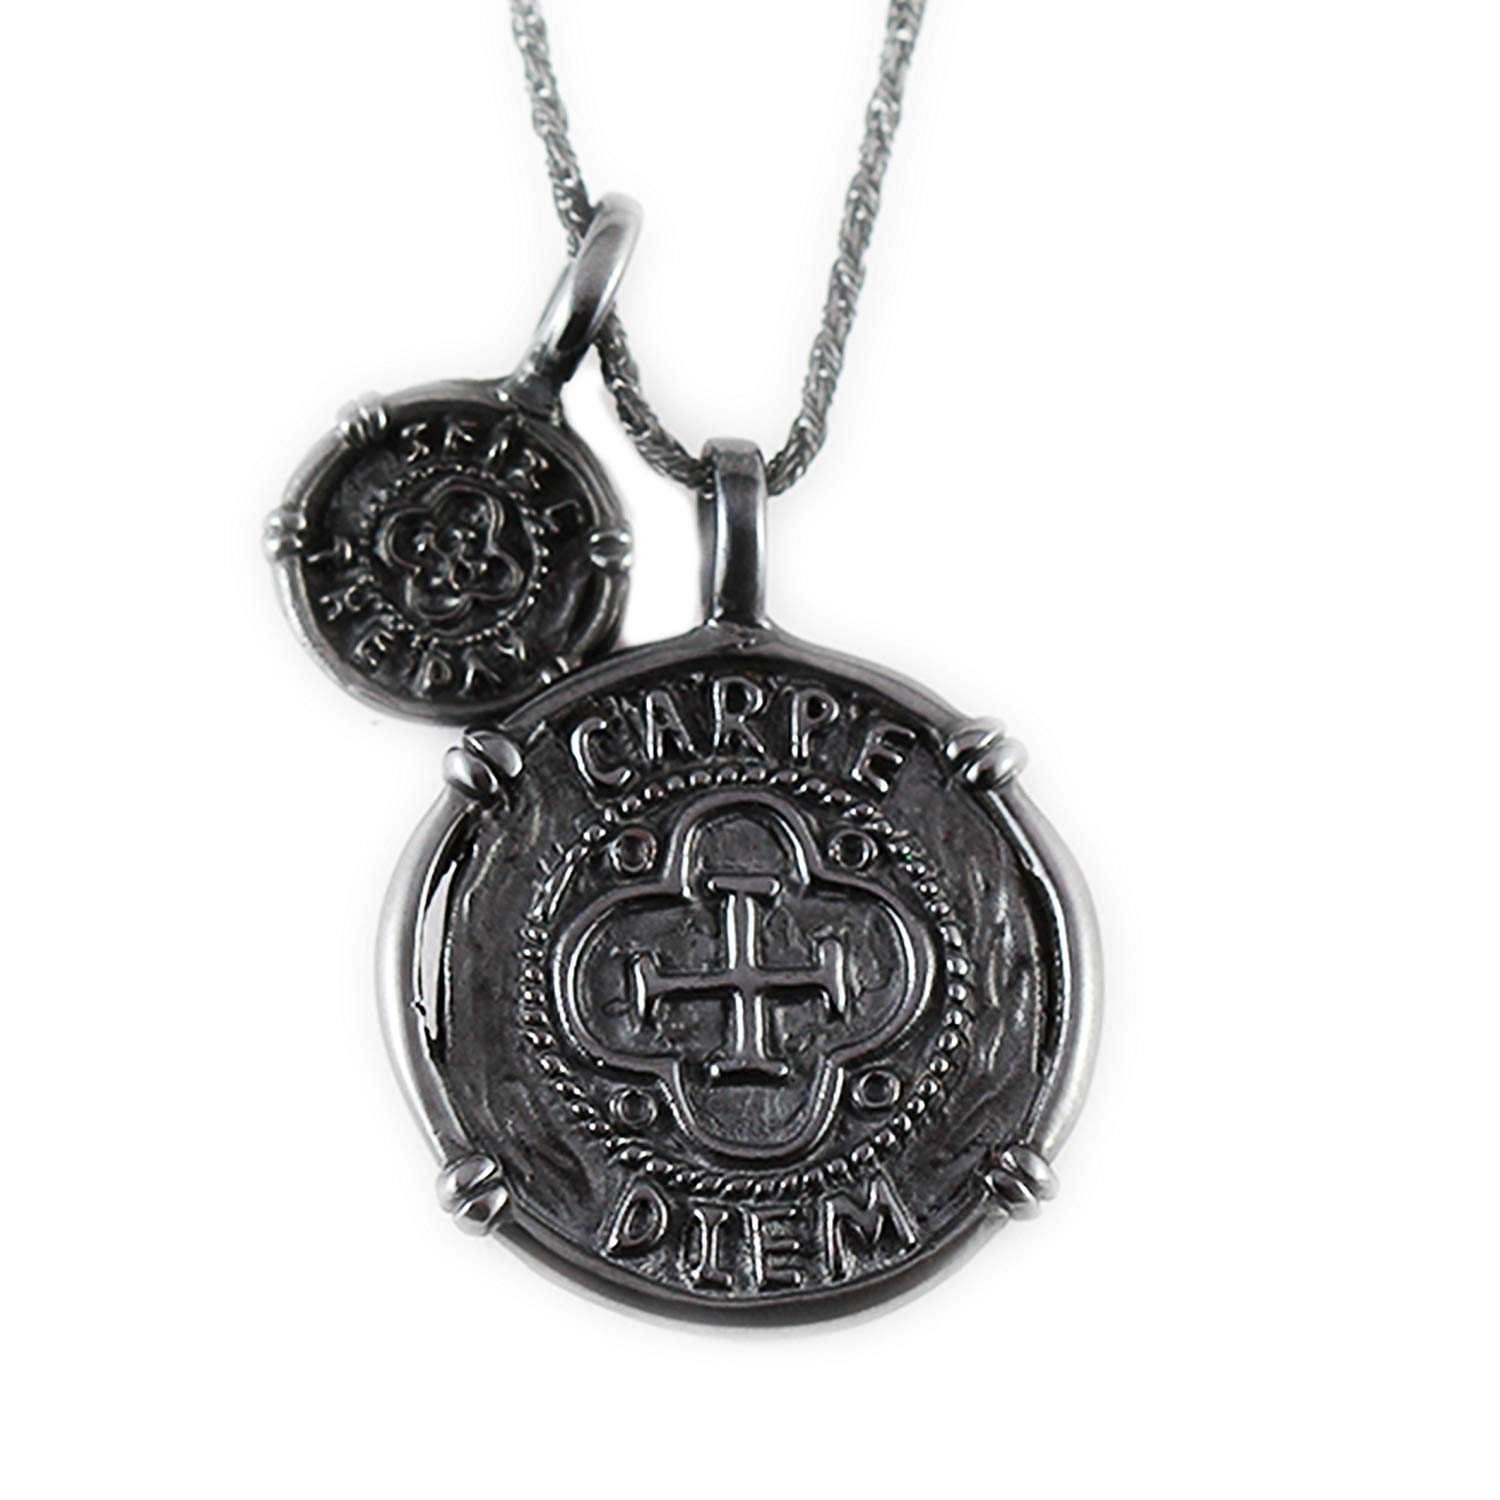 b667f6a250099 Get Quotations · Carpe Diem Jewelry Black Silver Pendant Mens Jewelry Mens  Necklace Black Necklace Black Silver Necklace Men s